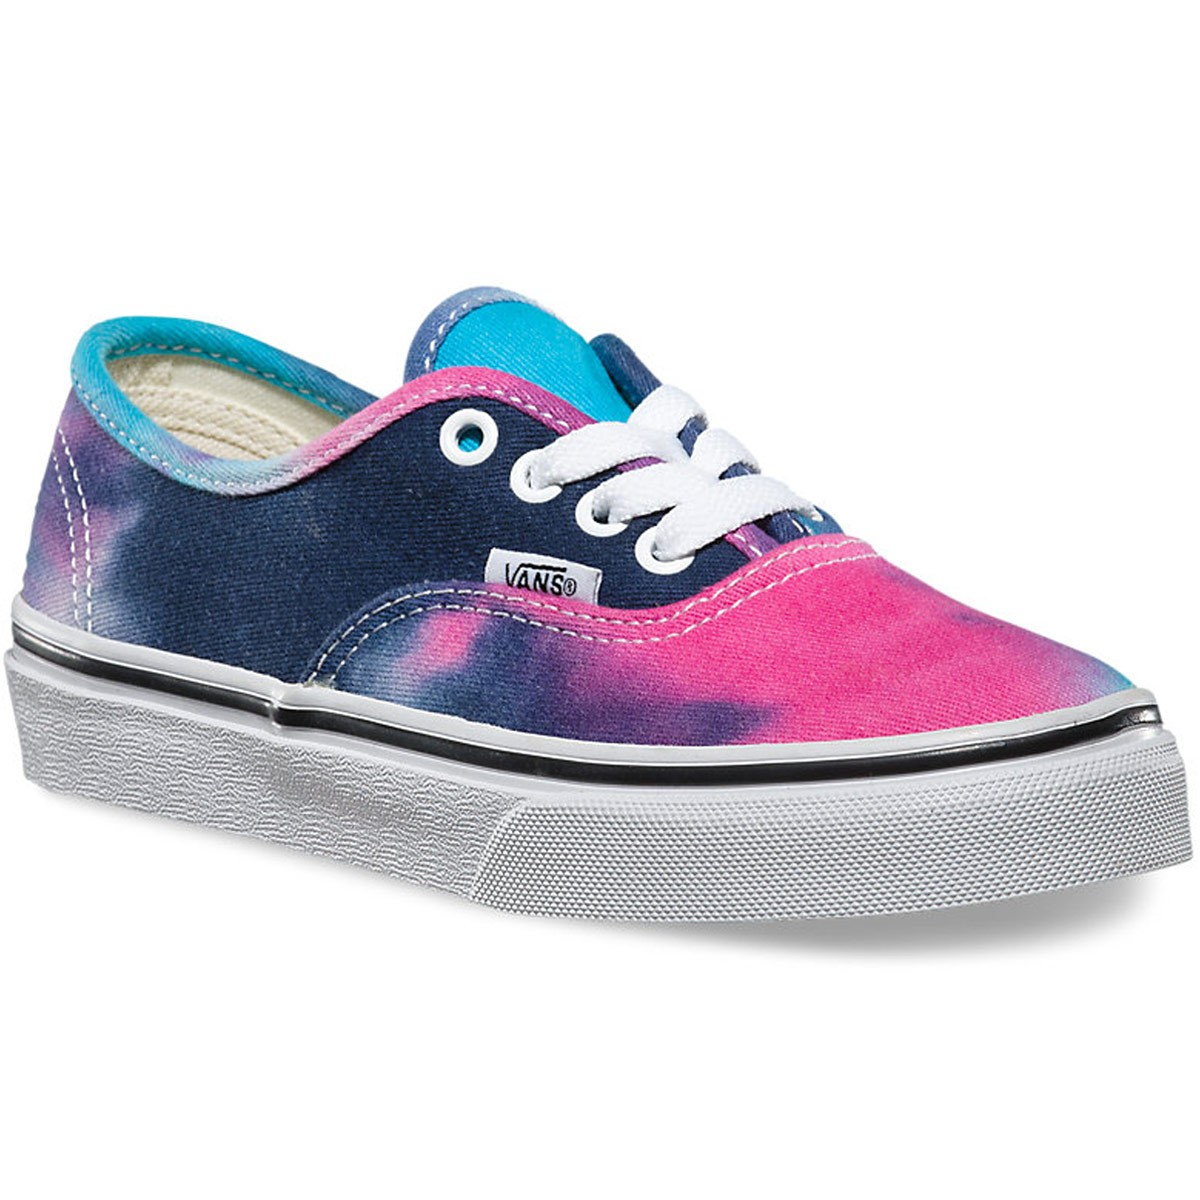 Vans Toddler Authentic Tie Dye Shoes